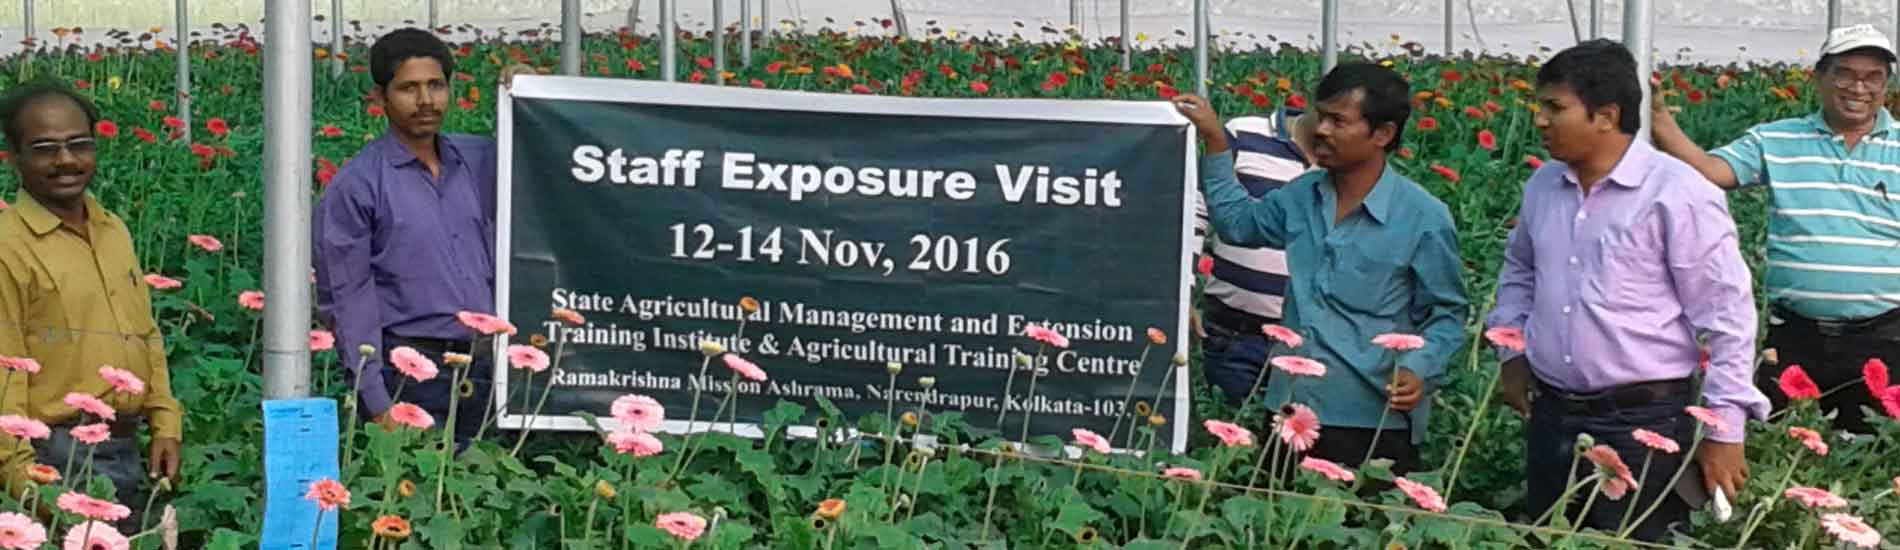 State Agriculture Management & Extension Training Institute and